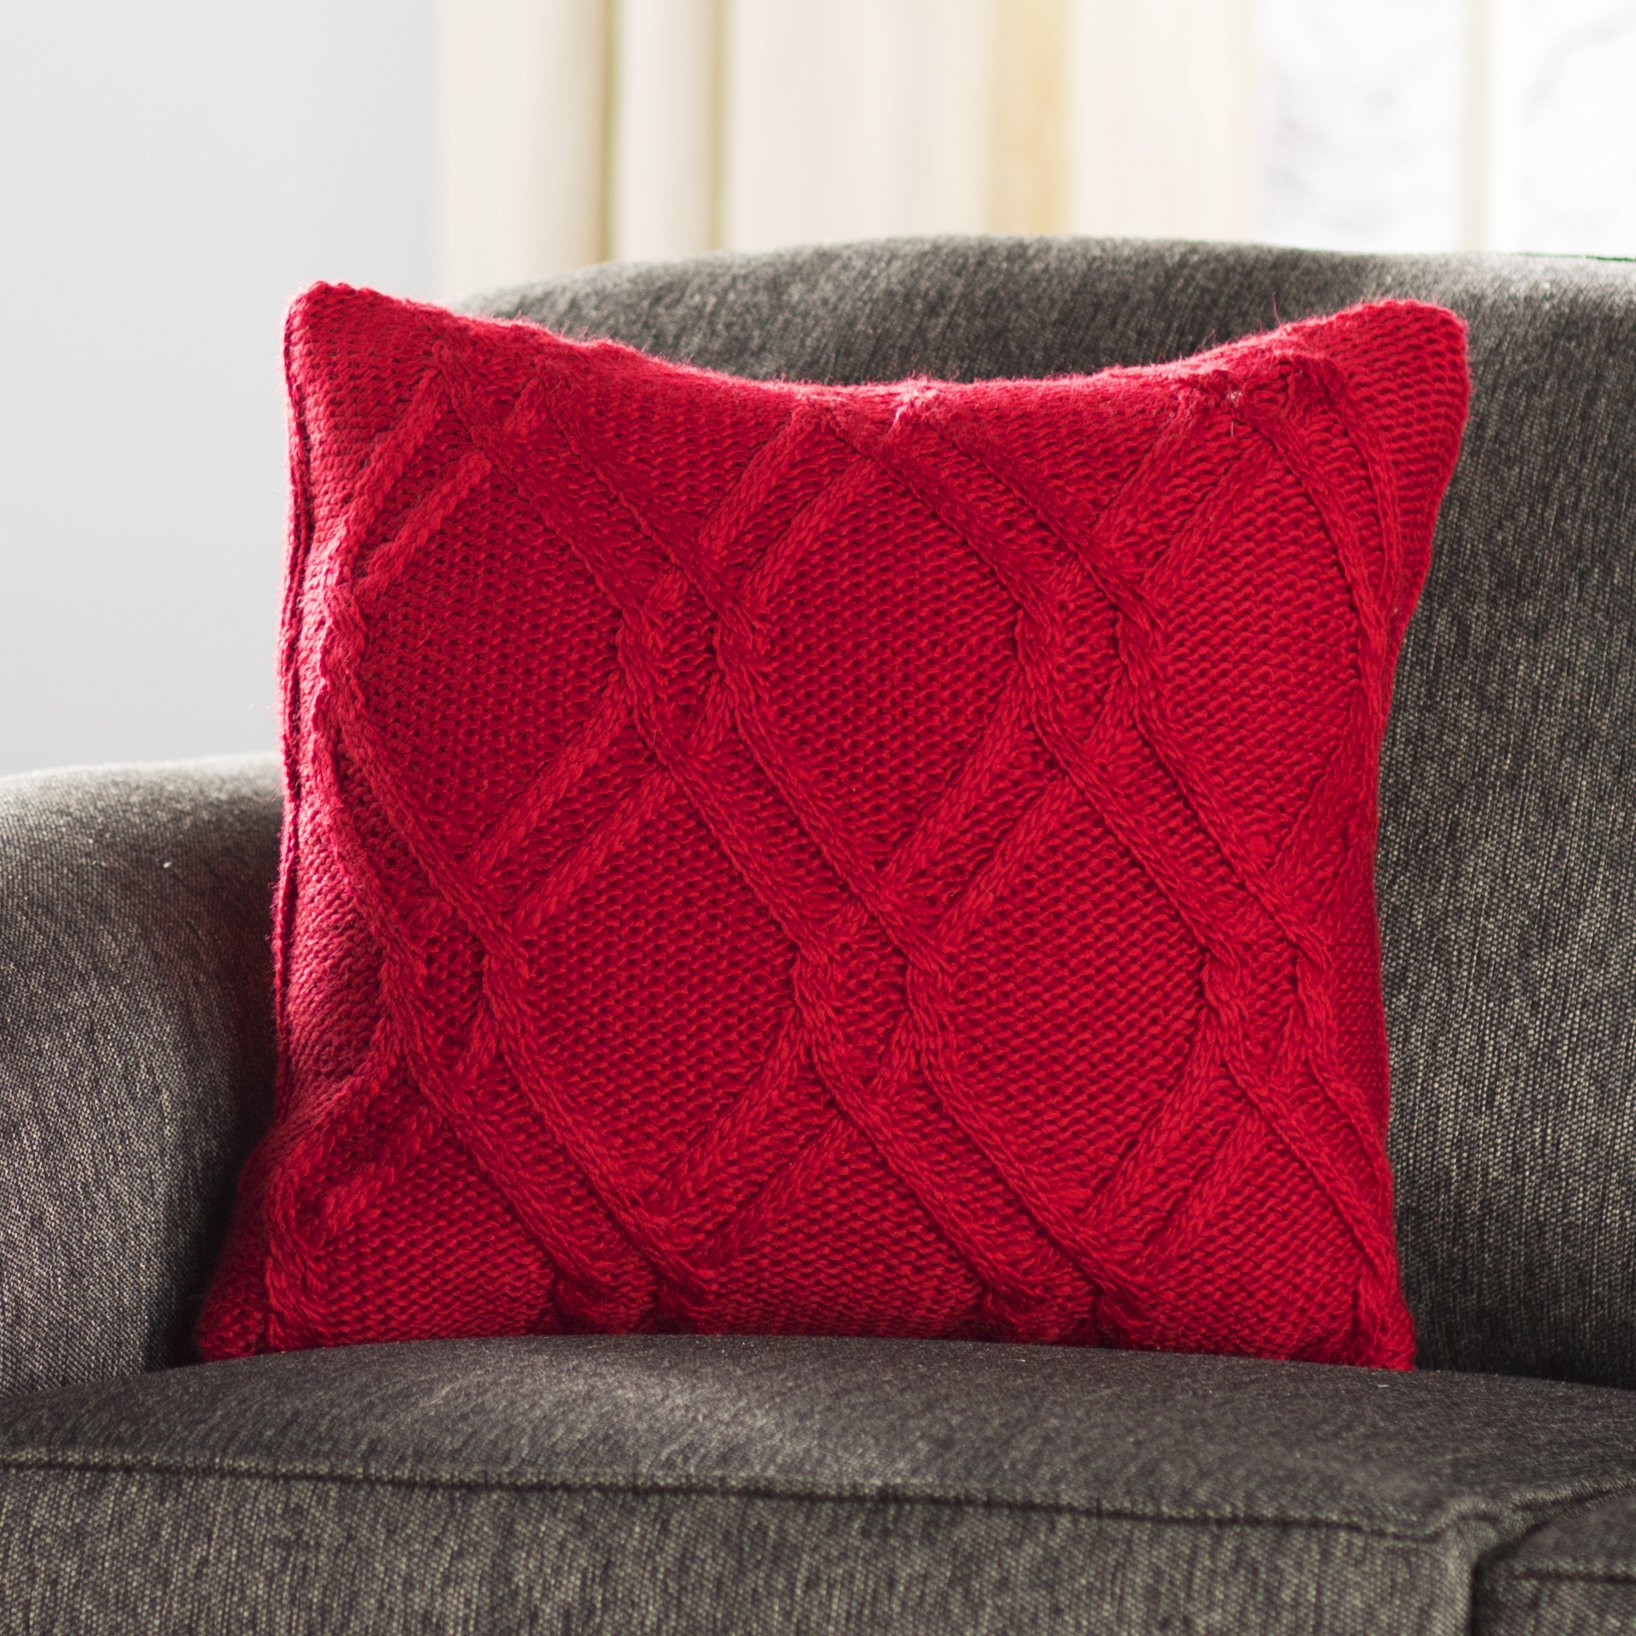 Awesome Three Posts Newmanstown Cable Knit Throw Pillow & Reviews Cable Knit Throw Pillow Of Great 48 Ideas Cable Knit Throw Pillow